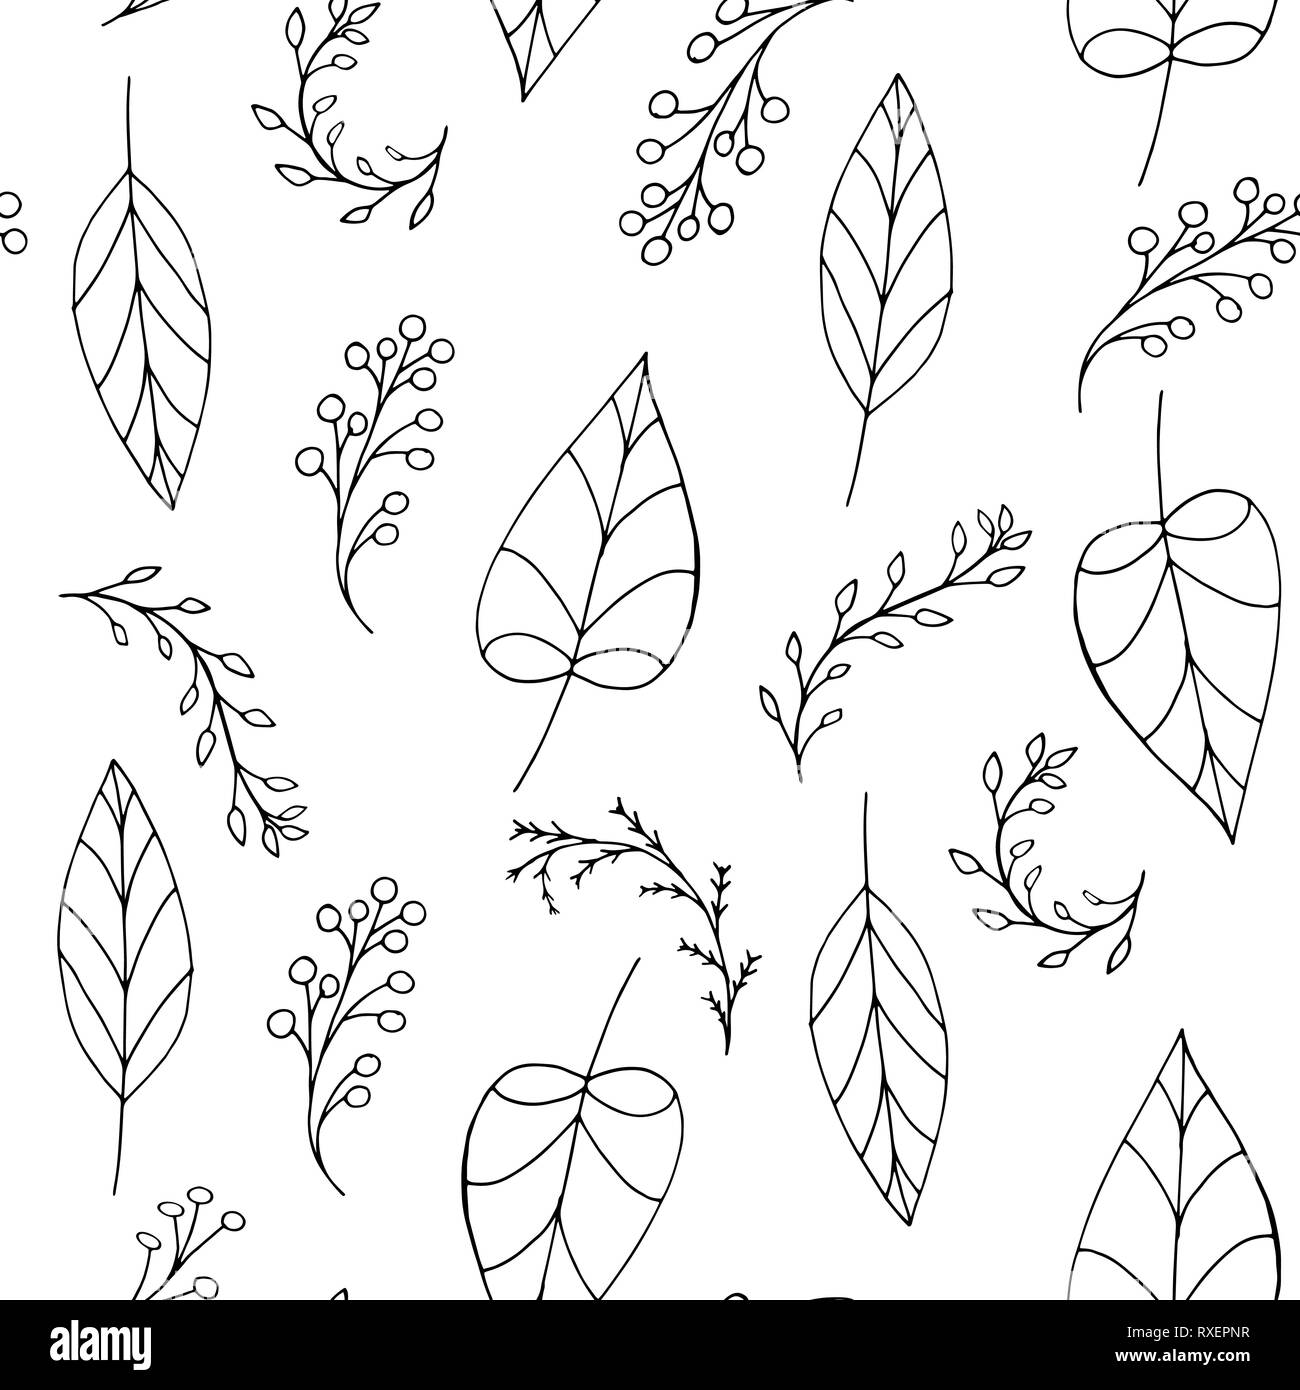 Black Vector Doodle Seamless Pattern With Leaves Berries On White Background Repeating Wallpaper Hand Drawn Illustration With Abstract Plants Stock Vector Image Art Alamy